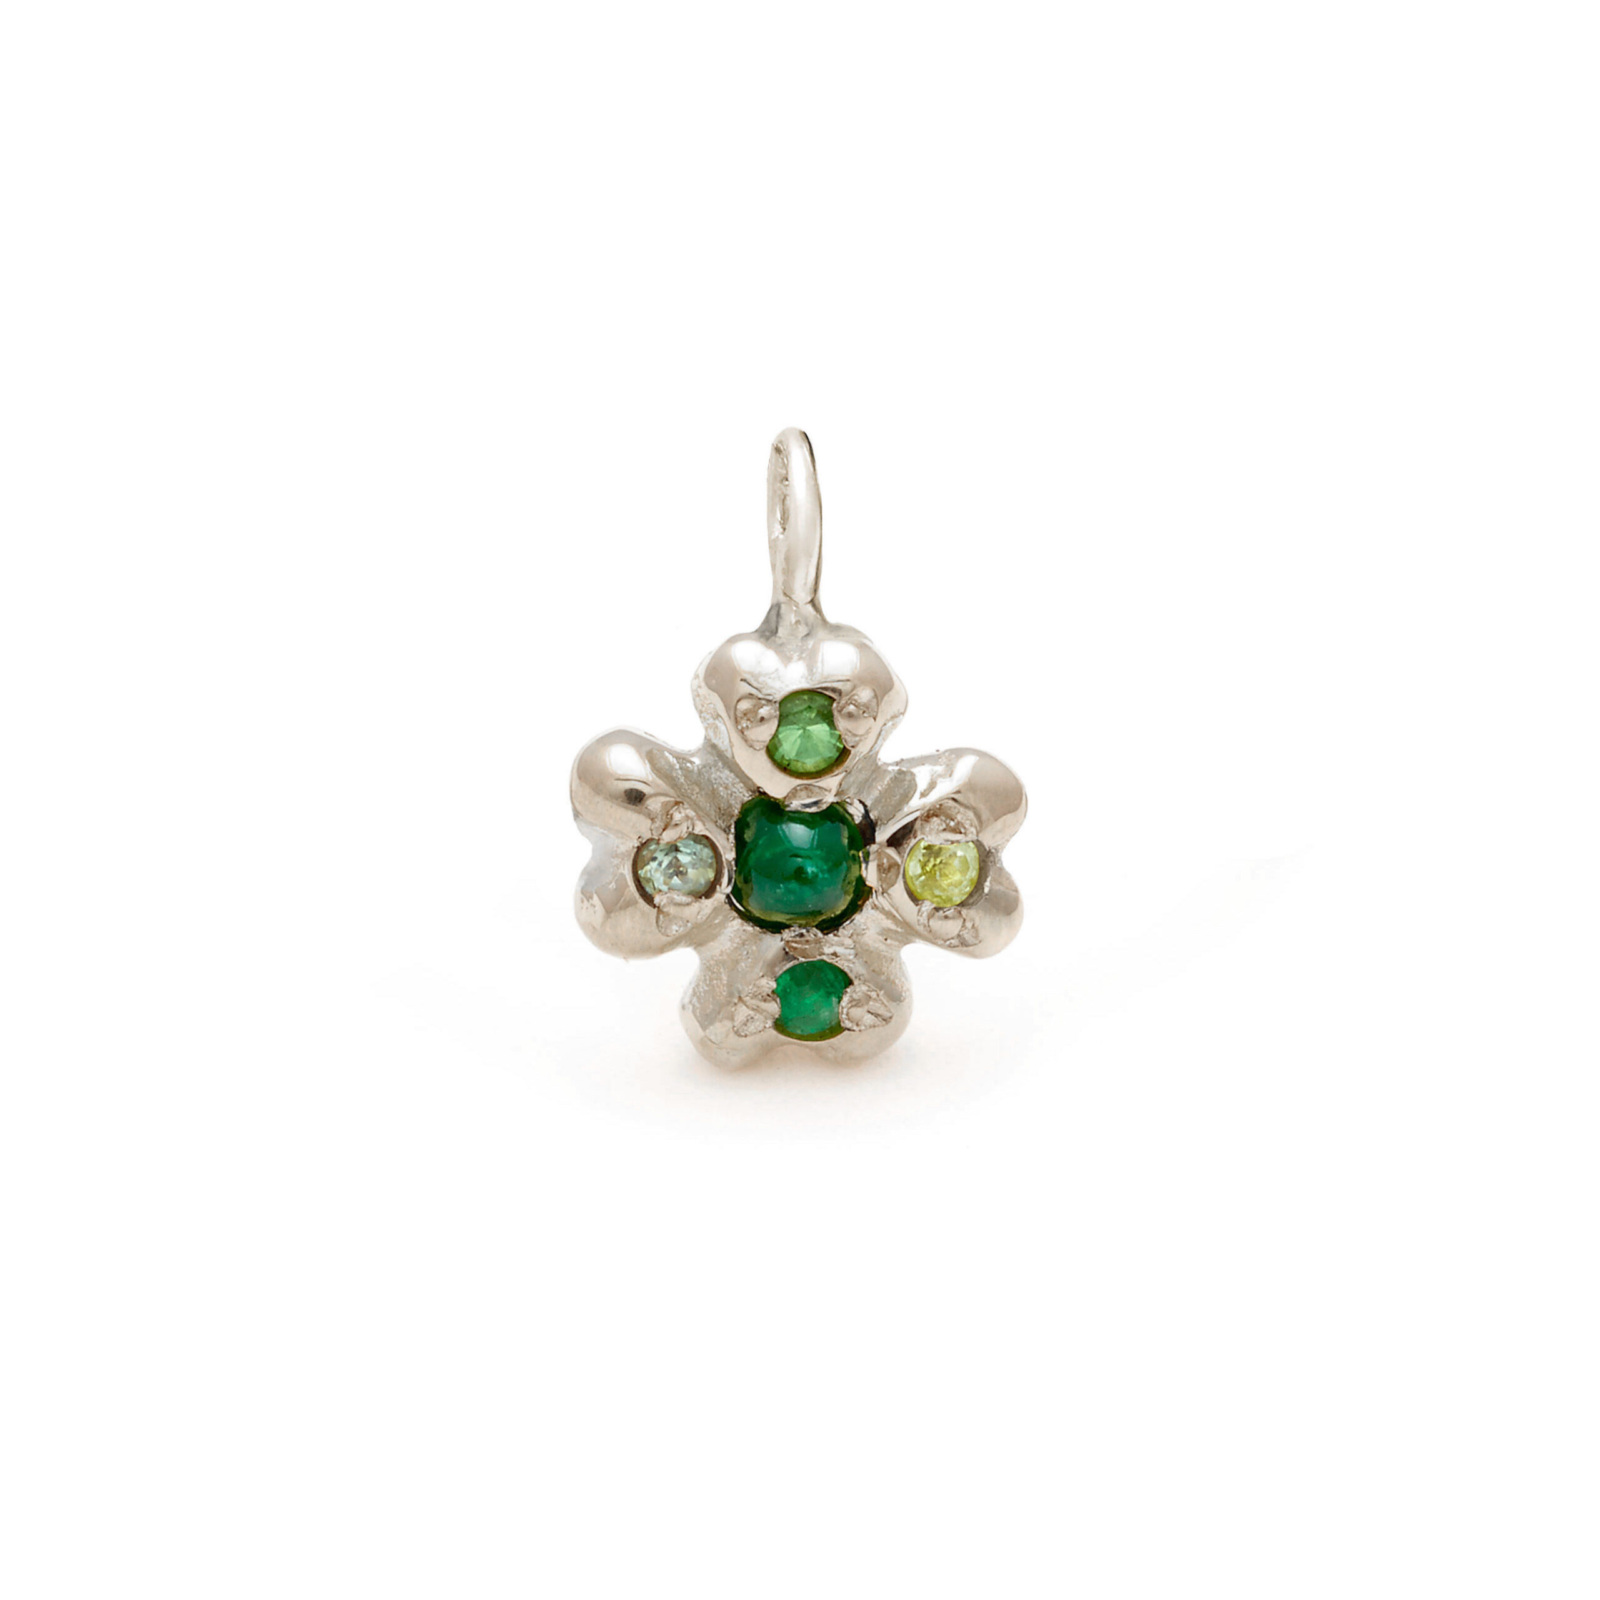 clover lucky charm jewelry - white gold